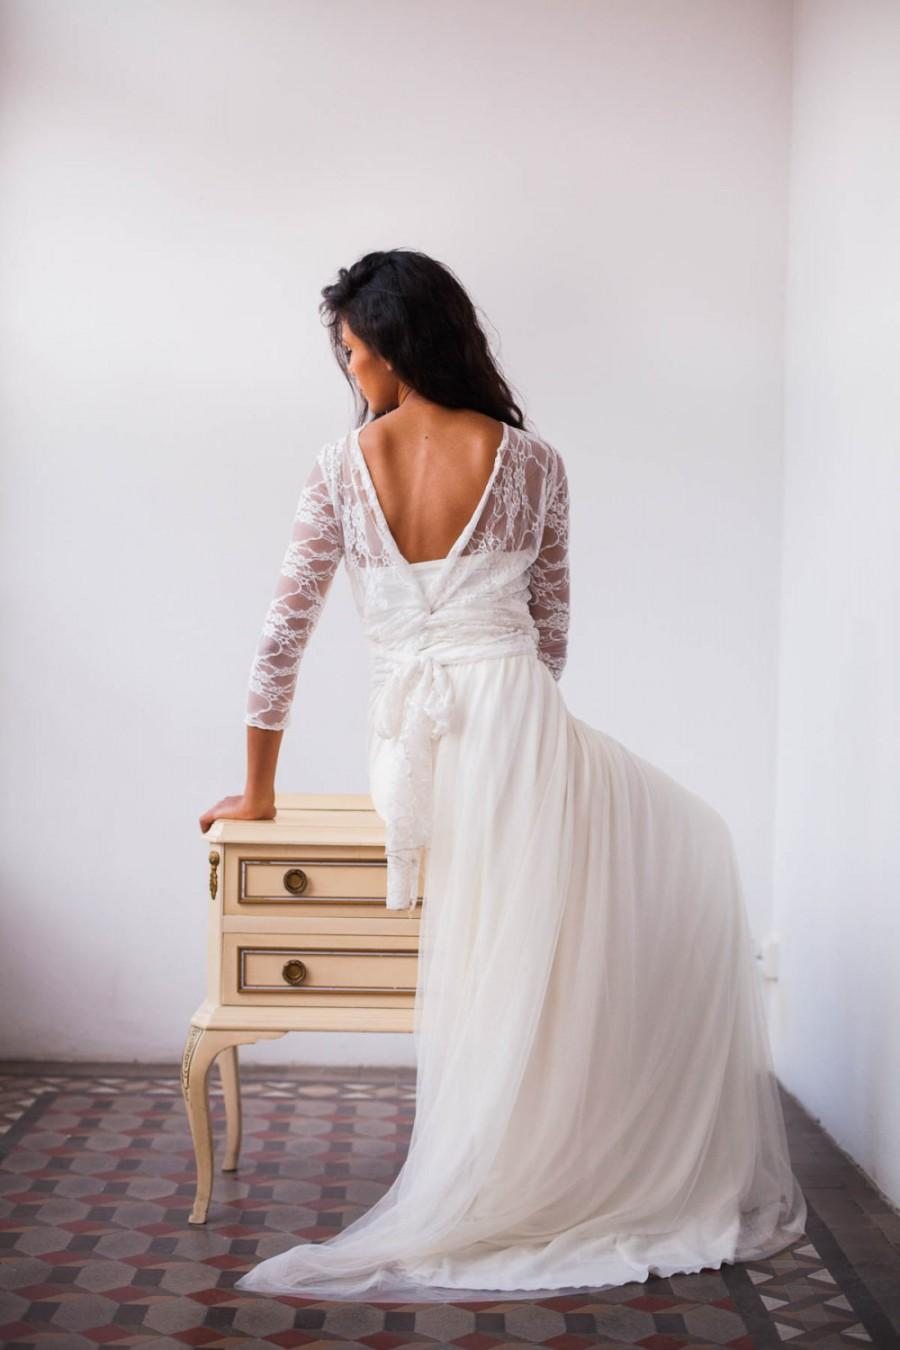 Mariage - Tulle and lace wedding dress, Romantic tulle dress, Long sleeve lace wedding dress, Tulle bridal gown, Boho chic wedding dress with sleeves